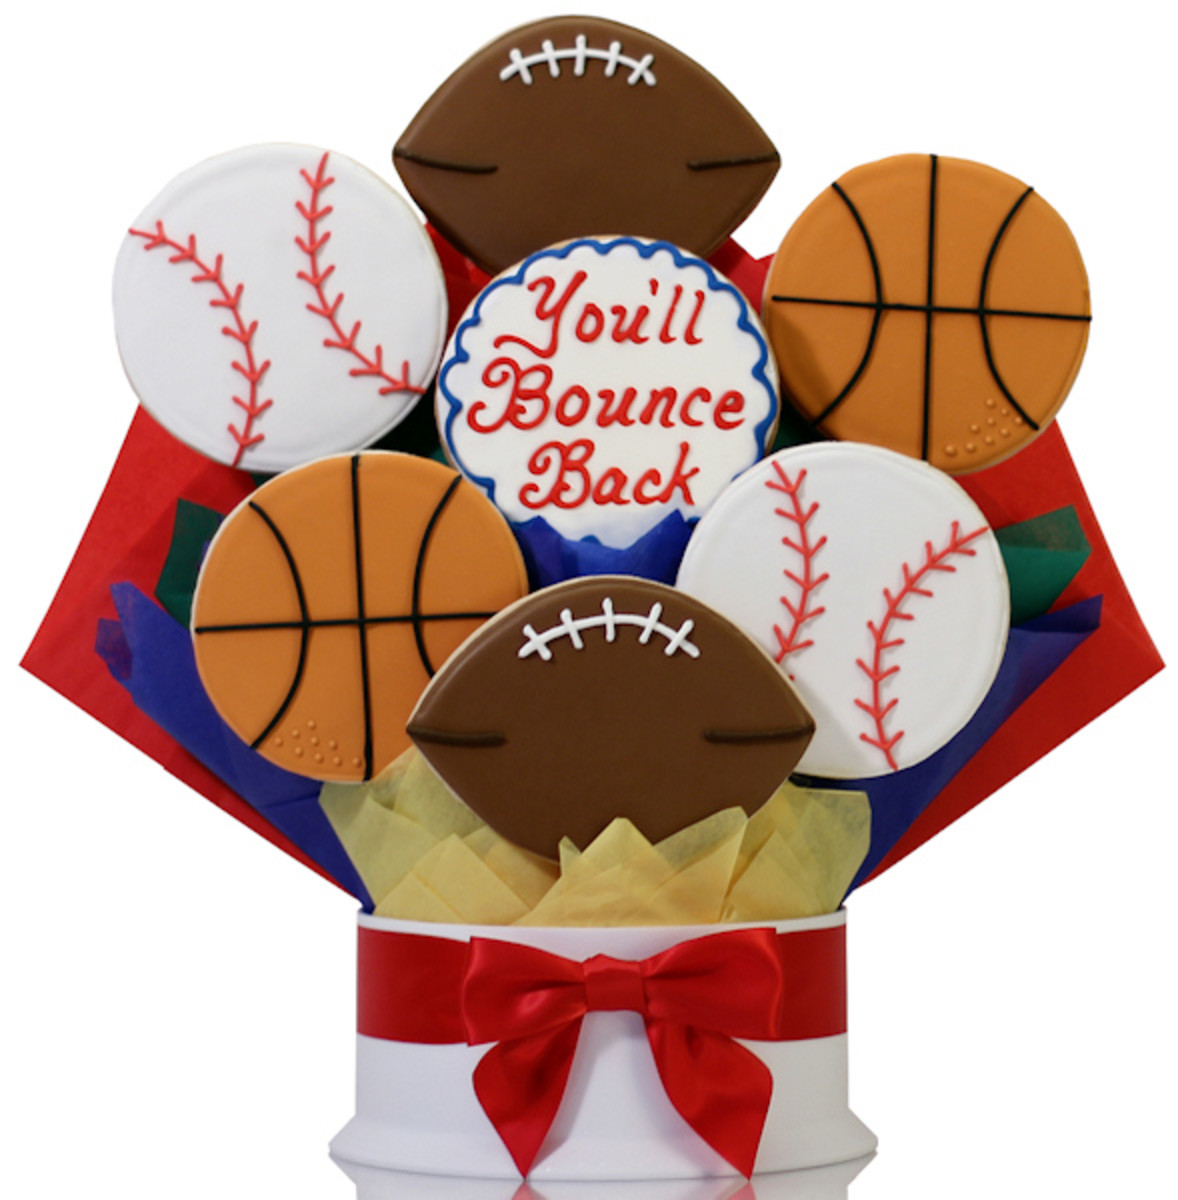 When you need a little pick-up for the sports lover in your life, consider a basket or bouquet of cookies with a sports theme.